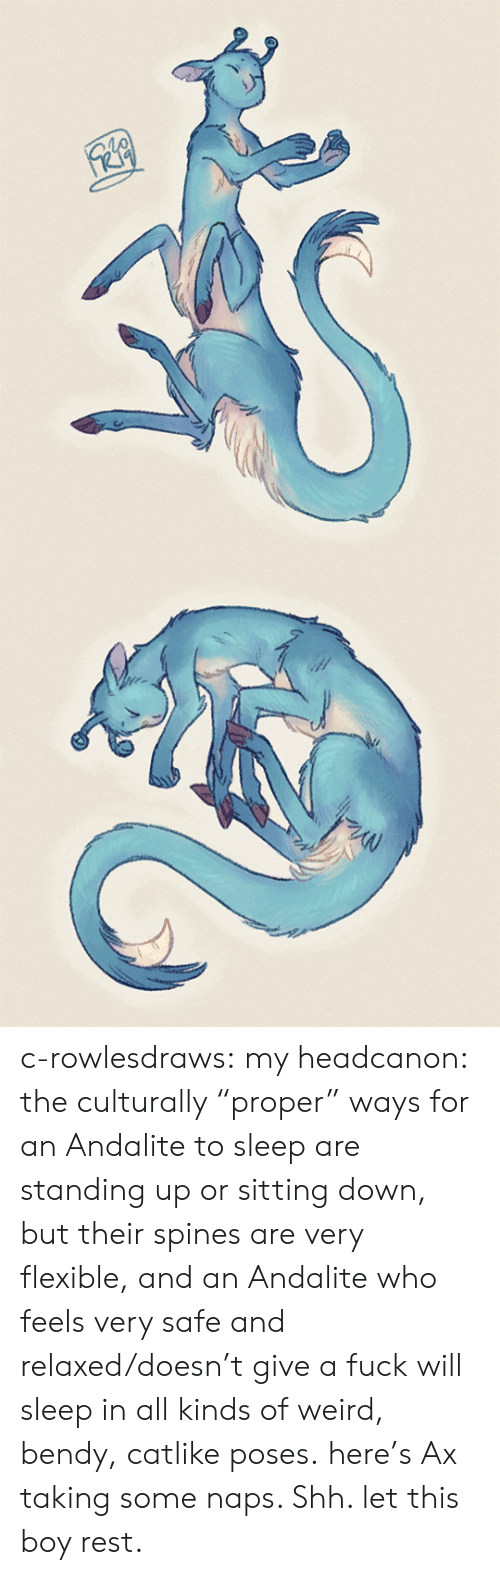 """Target, Tumblr, and Weird: c-rowlesdraws: my headcanon: the culturally """"proper"""" ways for an Andalite to sleep are standing up or sitting down, but their spines are very flexible, and an Andalite who feels very safe and relaxed/doesn't give a fuck will sleep in all kinds of weird, bendy, catlike poses. here's Ax taking some naps. Shh. let this boy rest."""